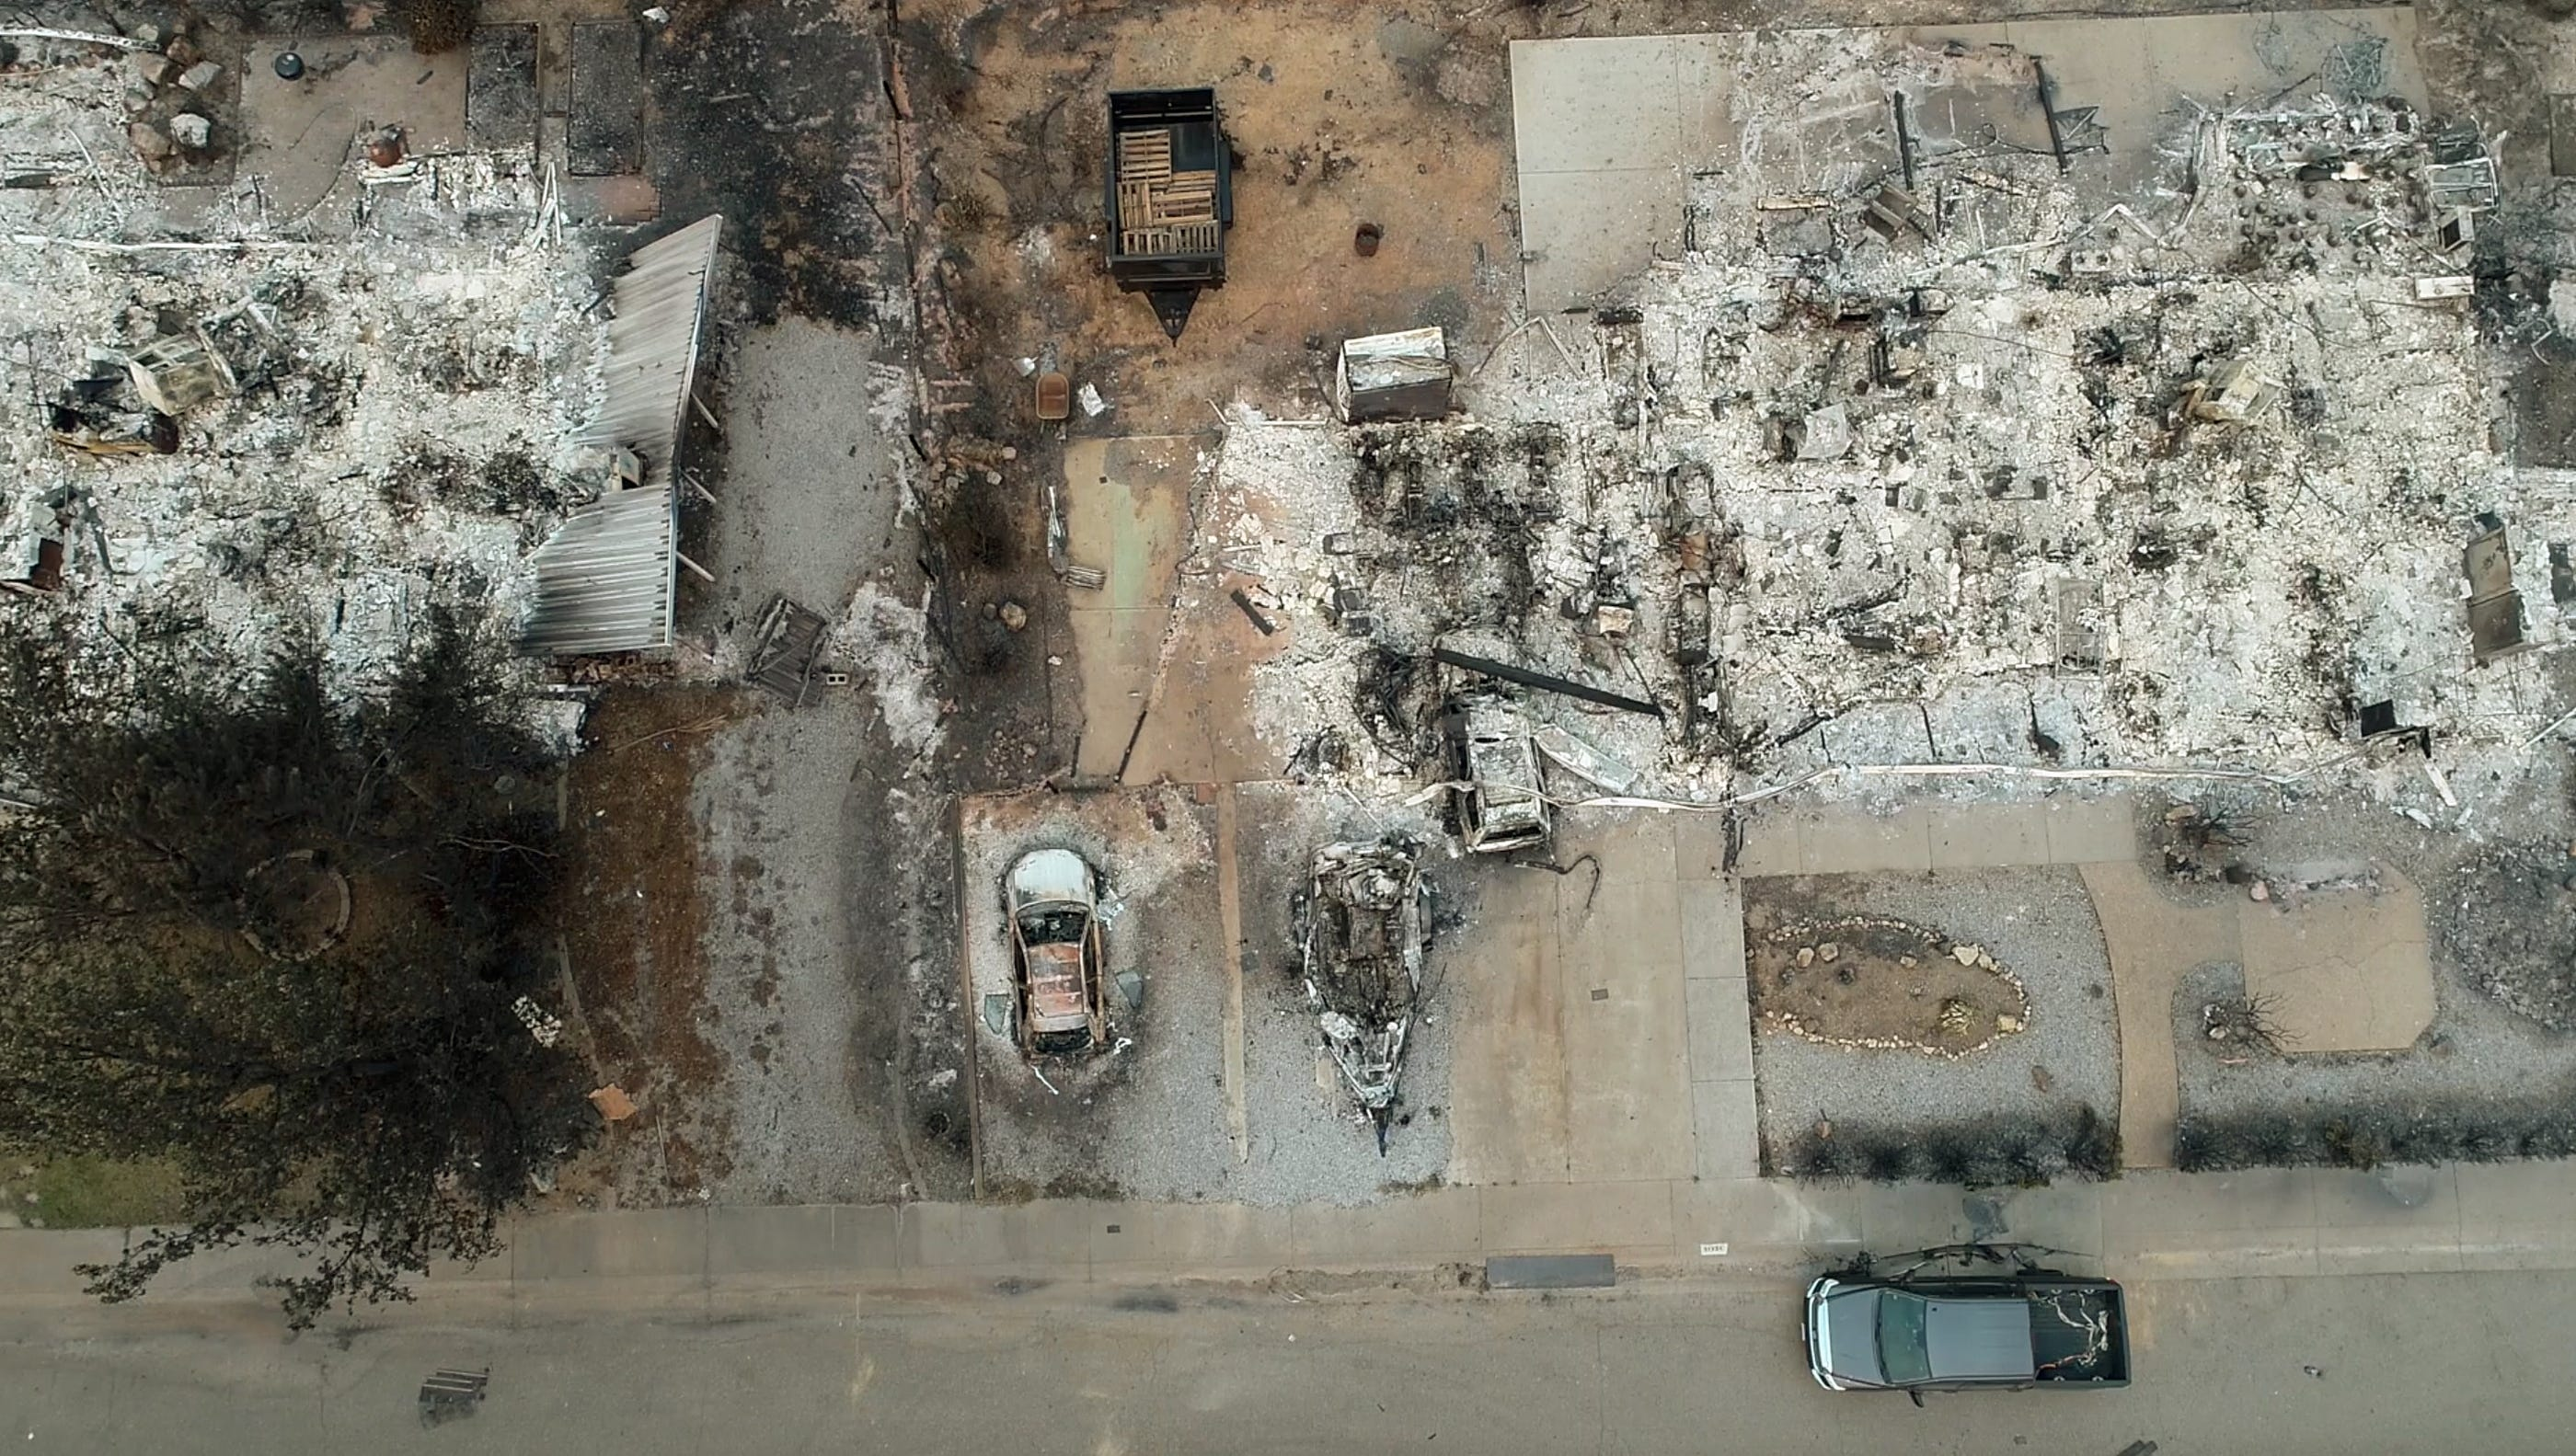 This is a view of destroyed homes in the Lake Keswick Estates neighborhood on the northwest side of Redding, Calif, Aug 2, 2018.